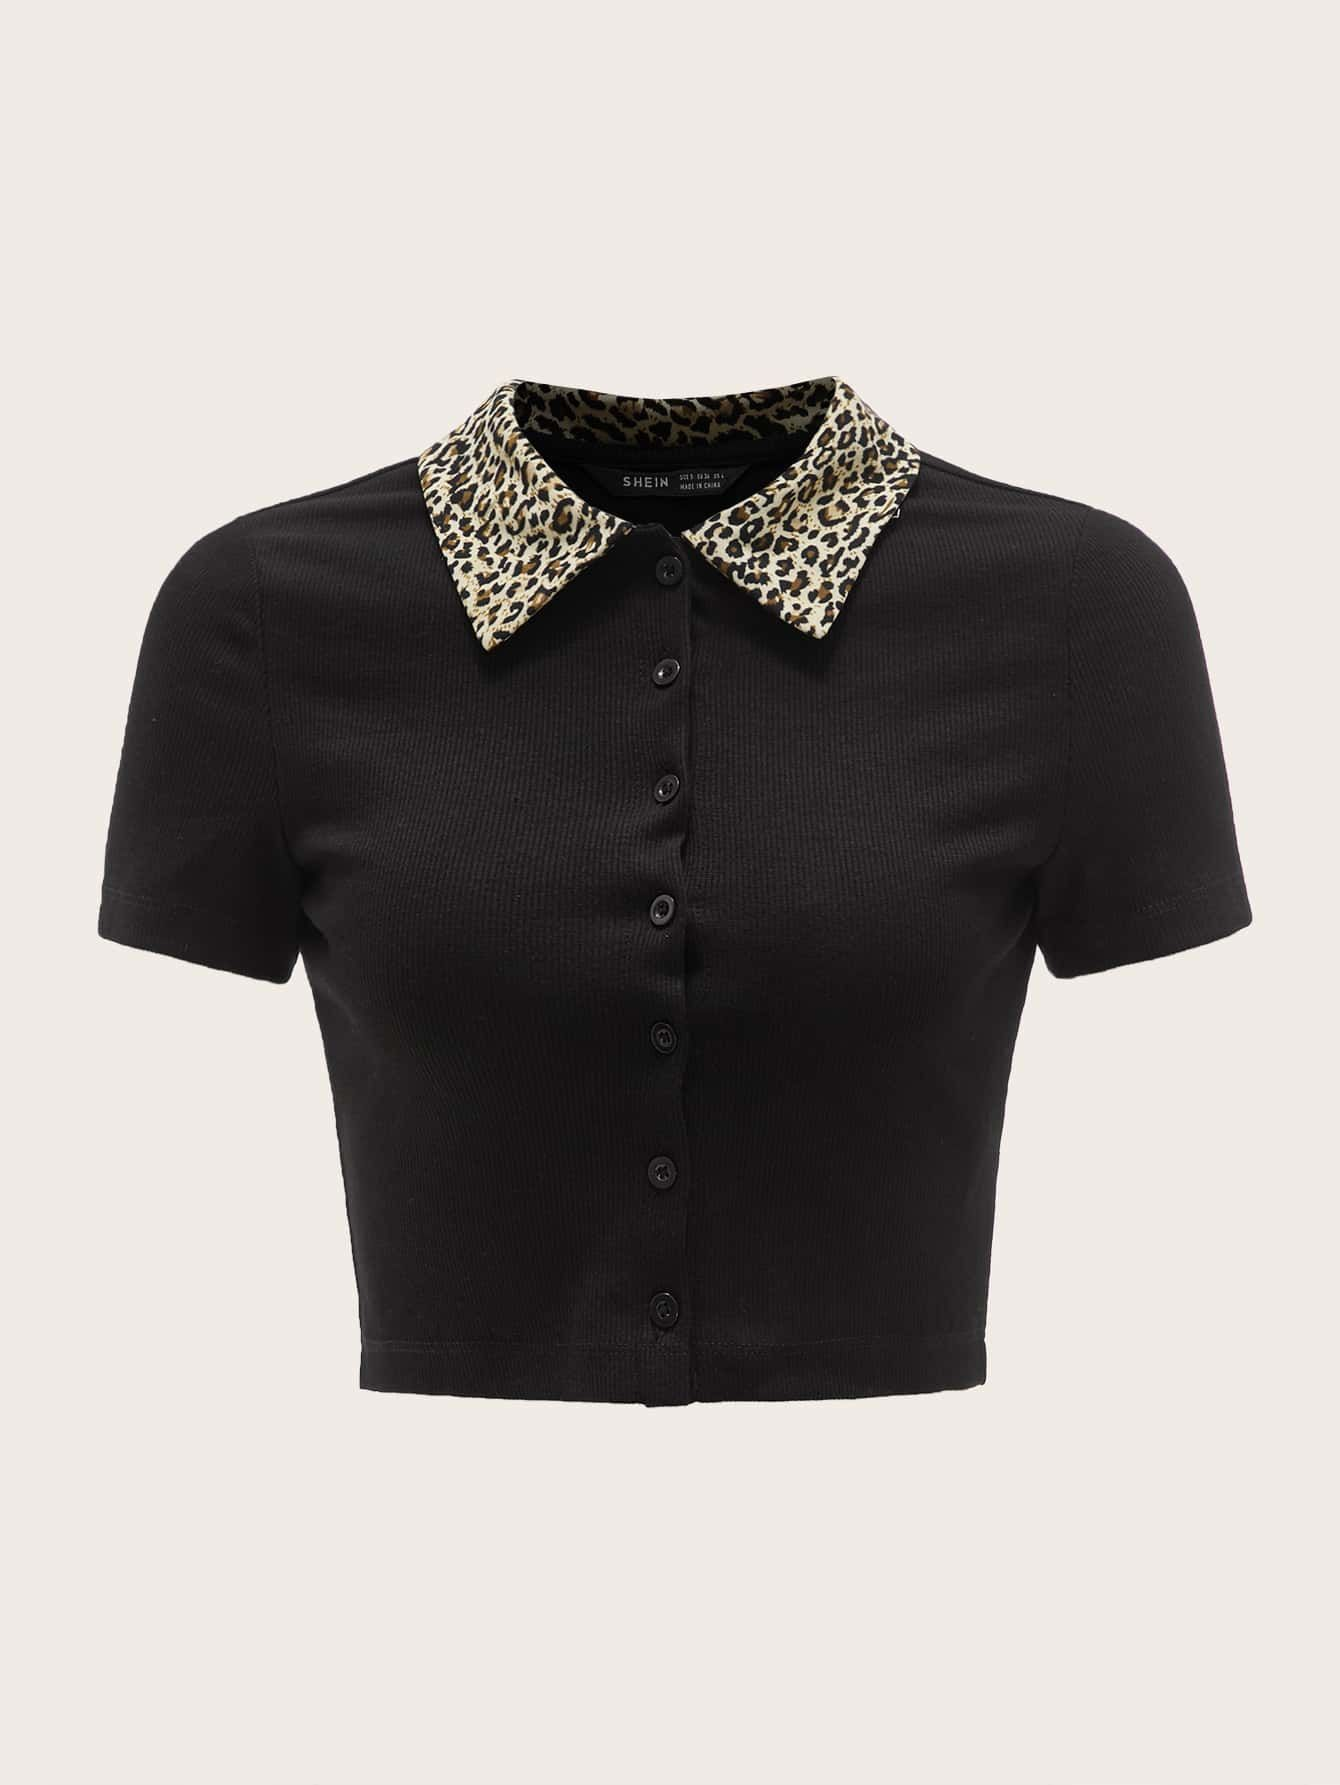 Black Friday 2020 Leopard Collared Buttoned Front Crop Top Shein Usa In 2020 Tops Crop Tops Clothes